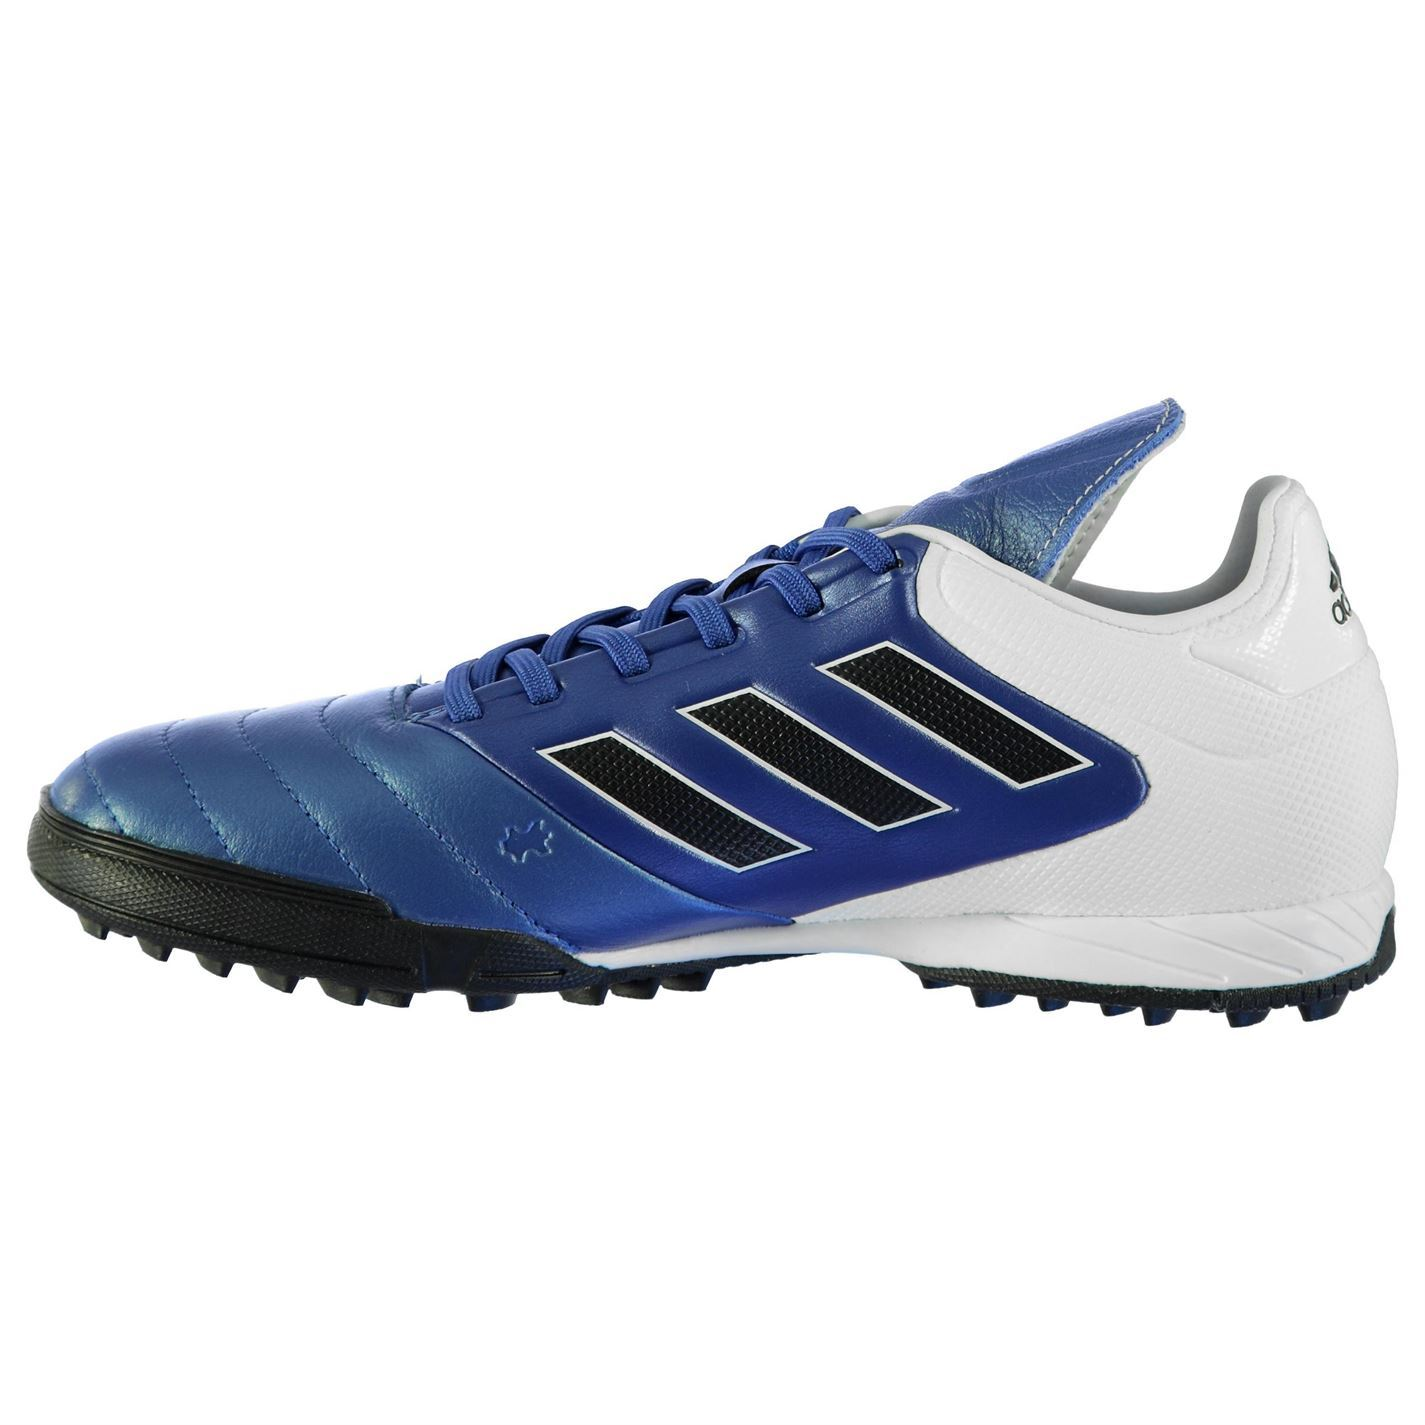 b2bb7c470c43 ... adidas Copa 17.3 AG Artificial Grass Trainers Mens Blue/Blk/Wht  Football Soccer